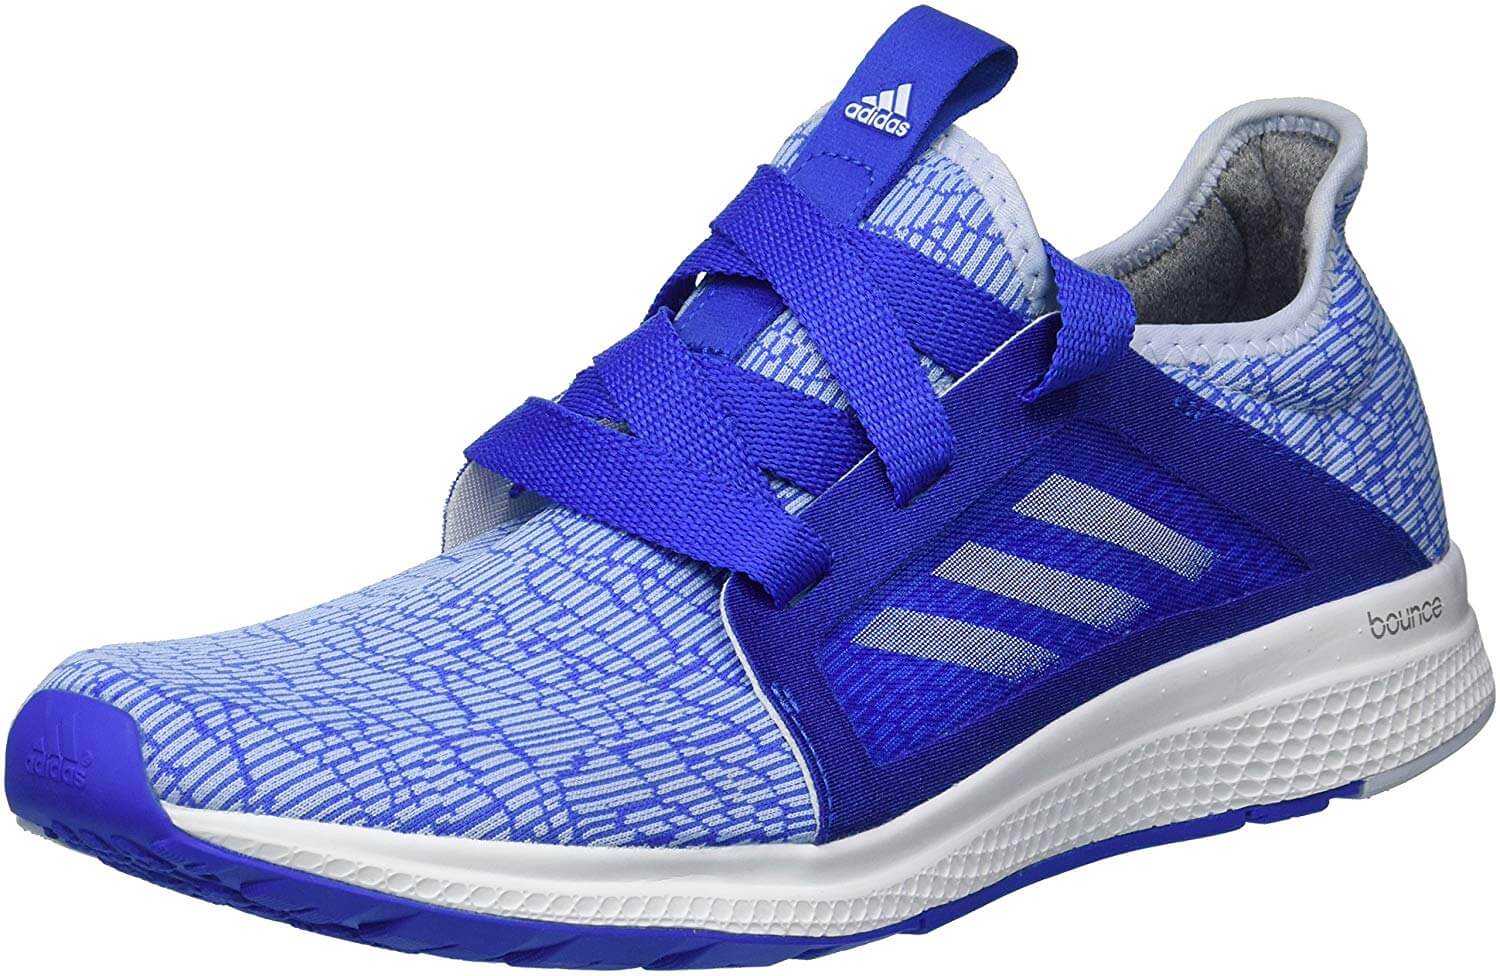 9f608944342b1 Adidas Performance Edge Lux Reviewed for Performance - WalkJogRun